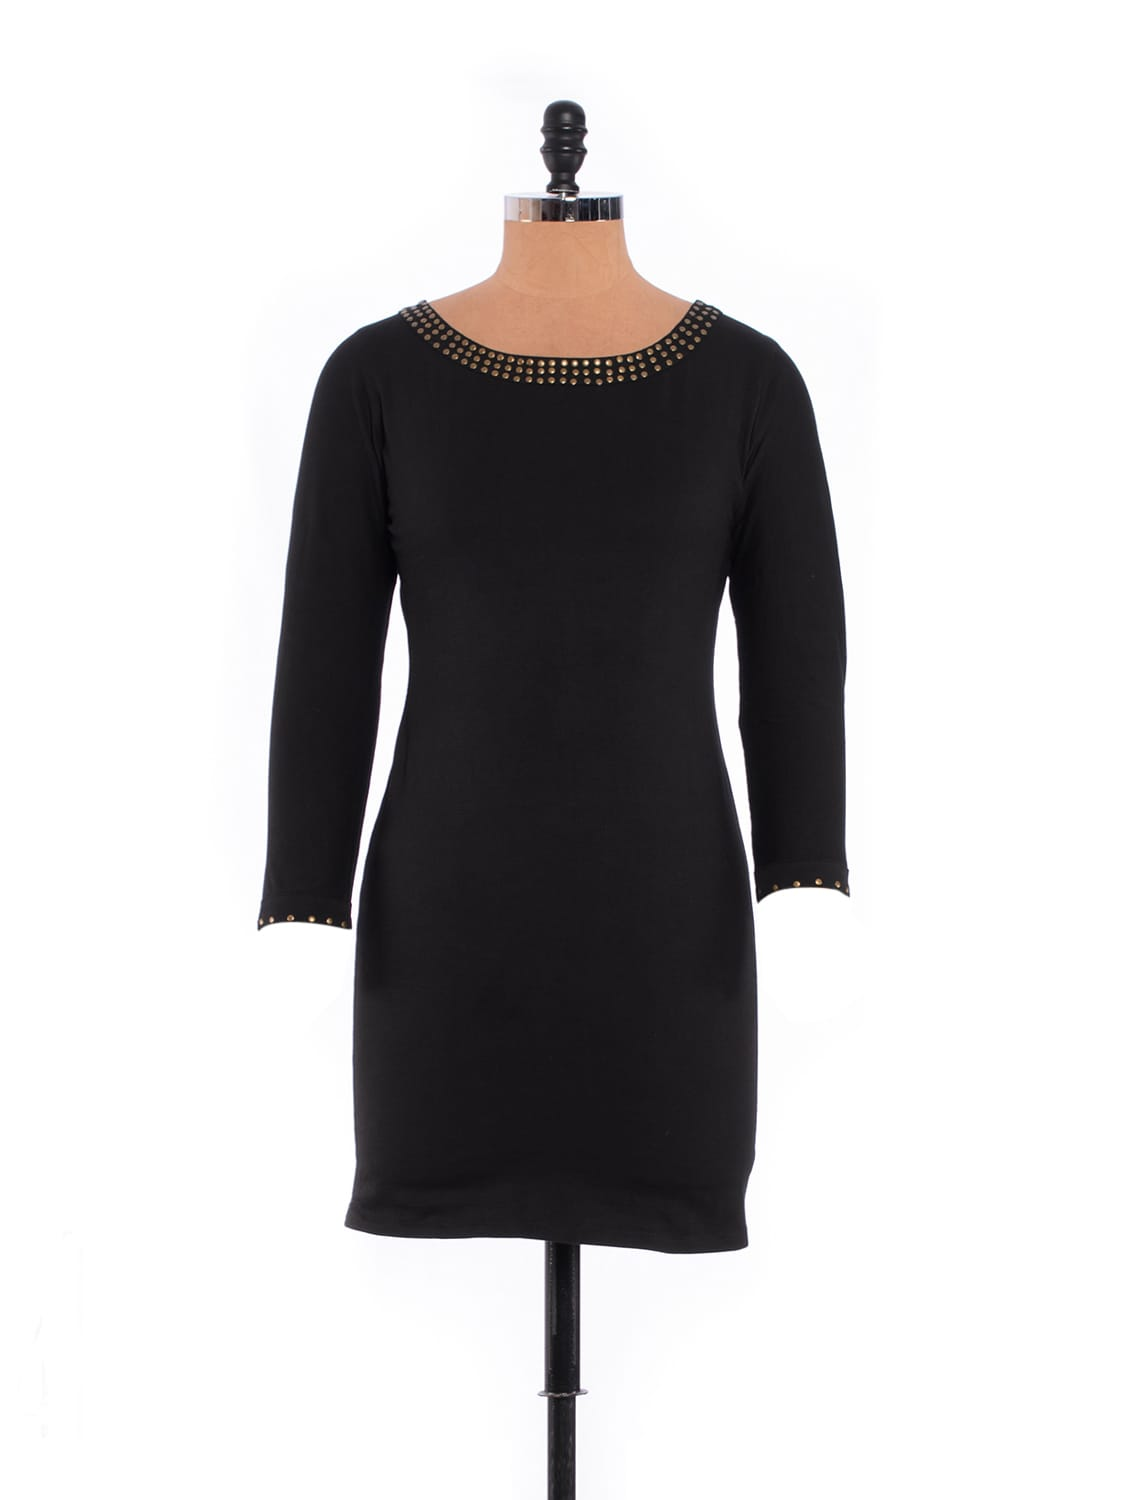 Dazzling Little Black Dress With Metallic Studs - Xniva